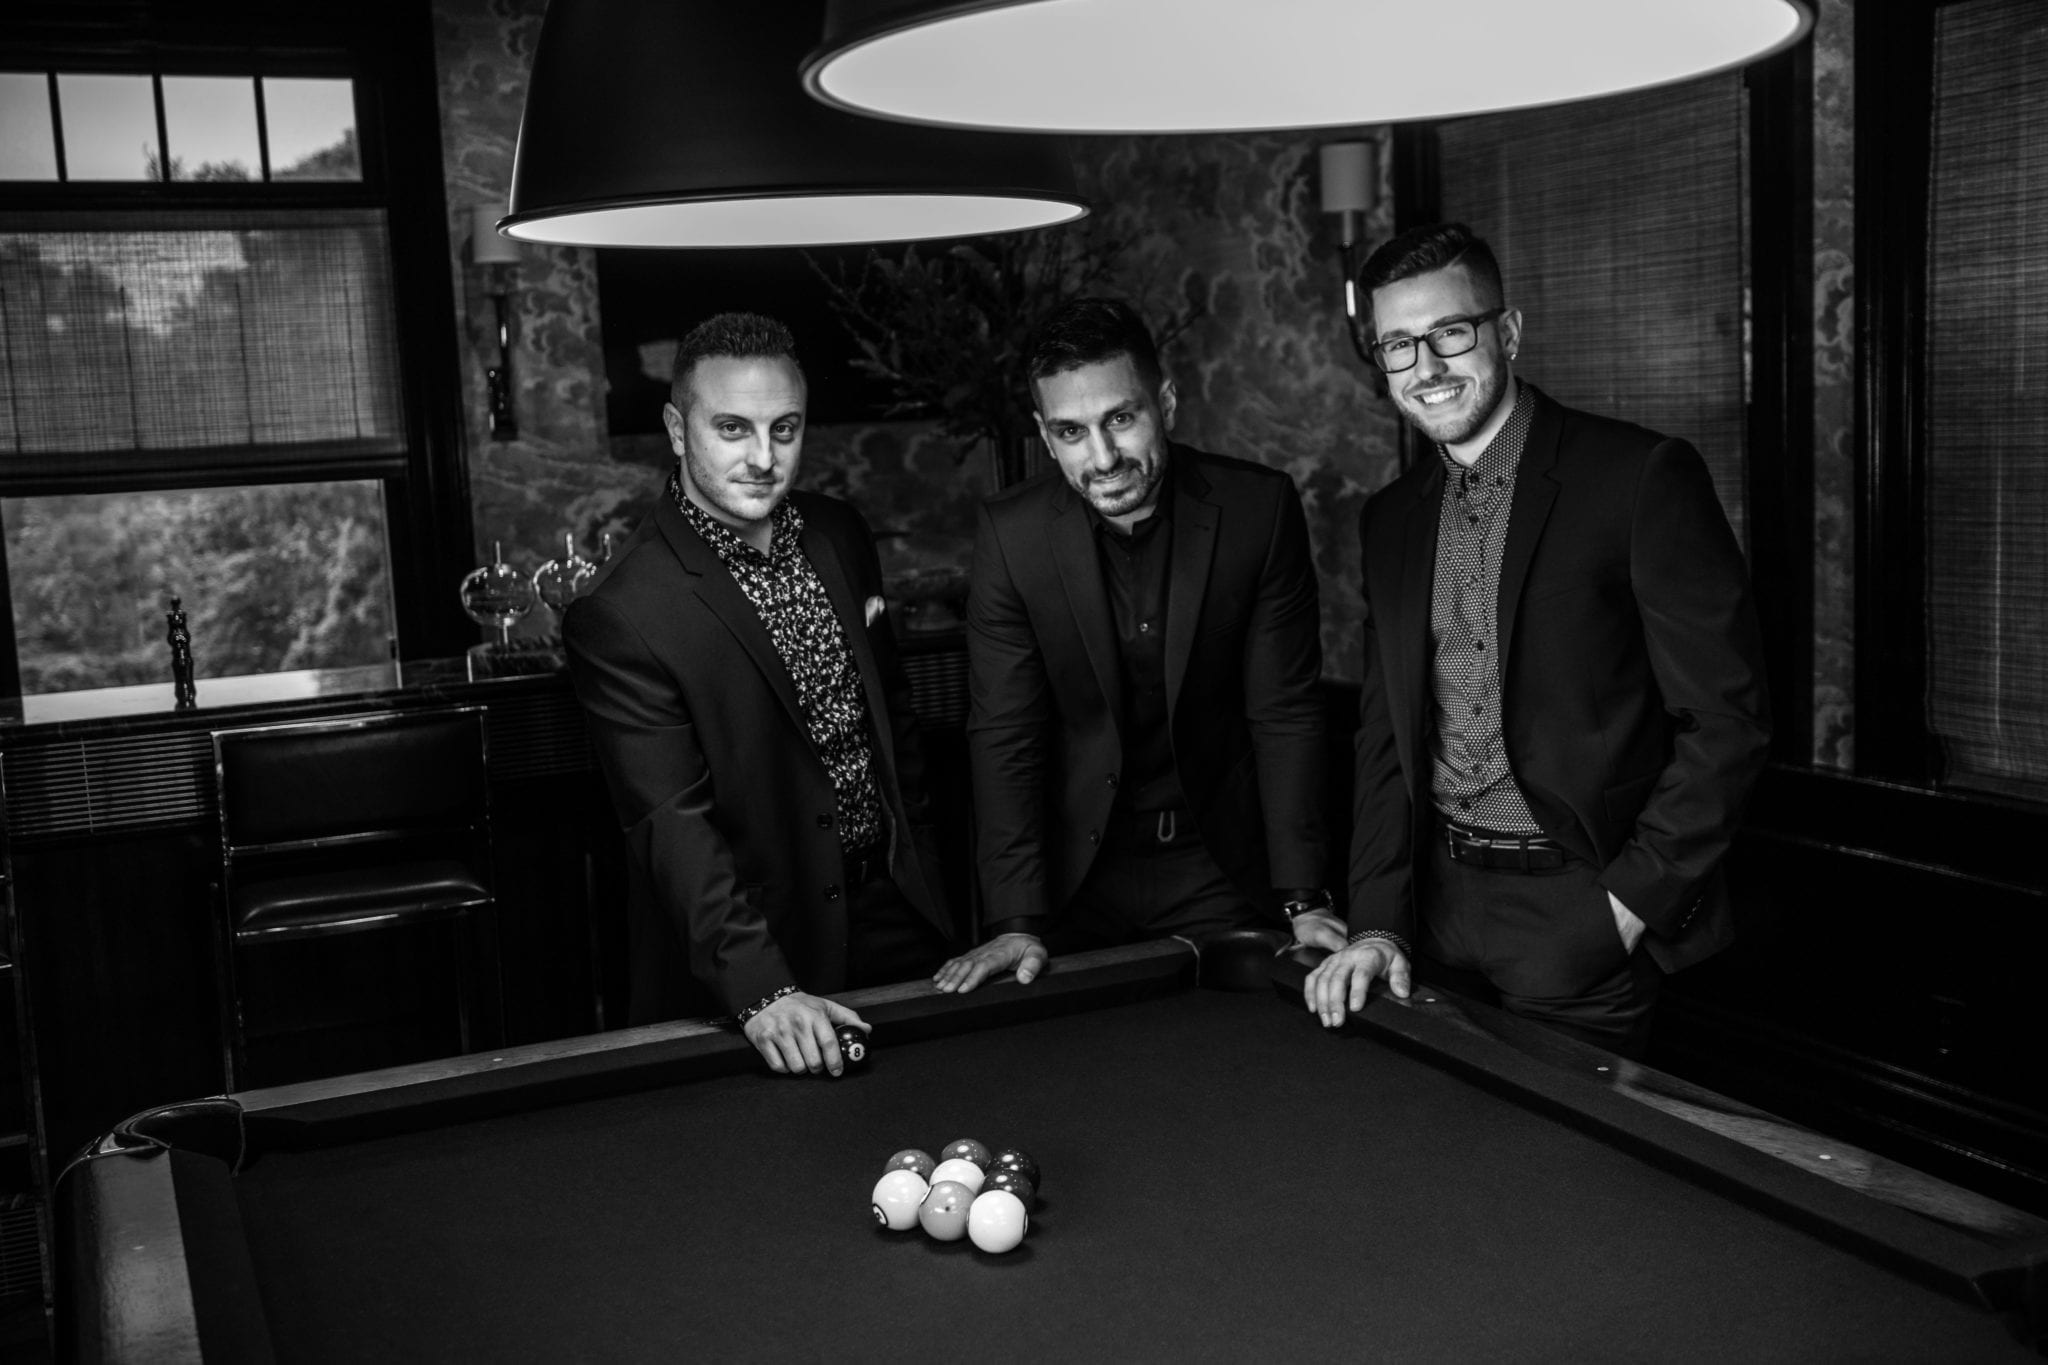 Three men standing by a pool table in suits.